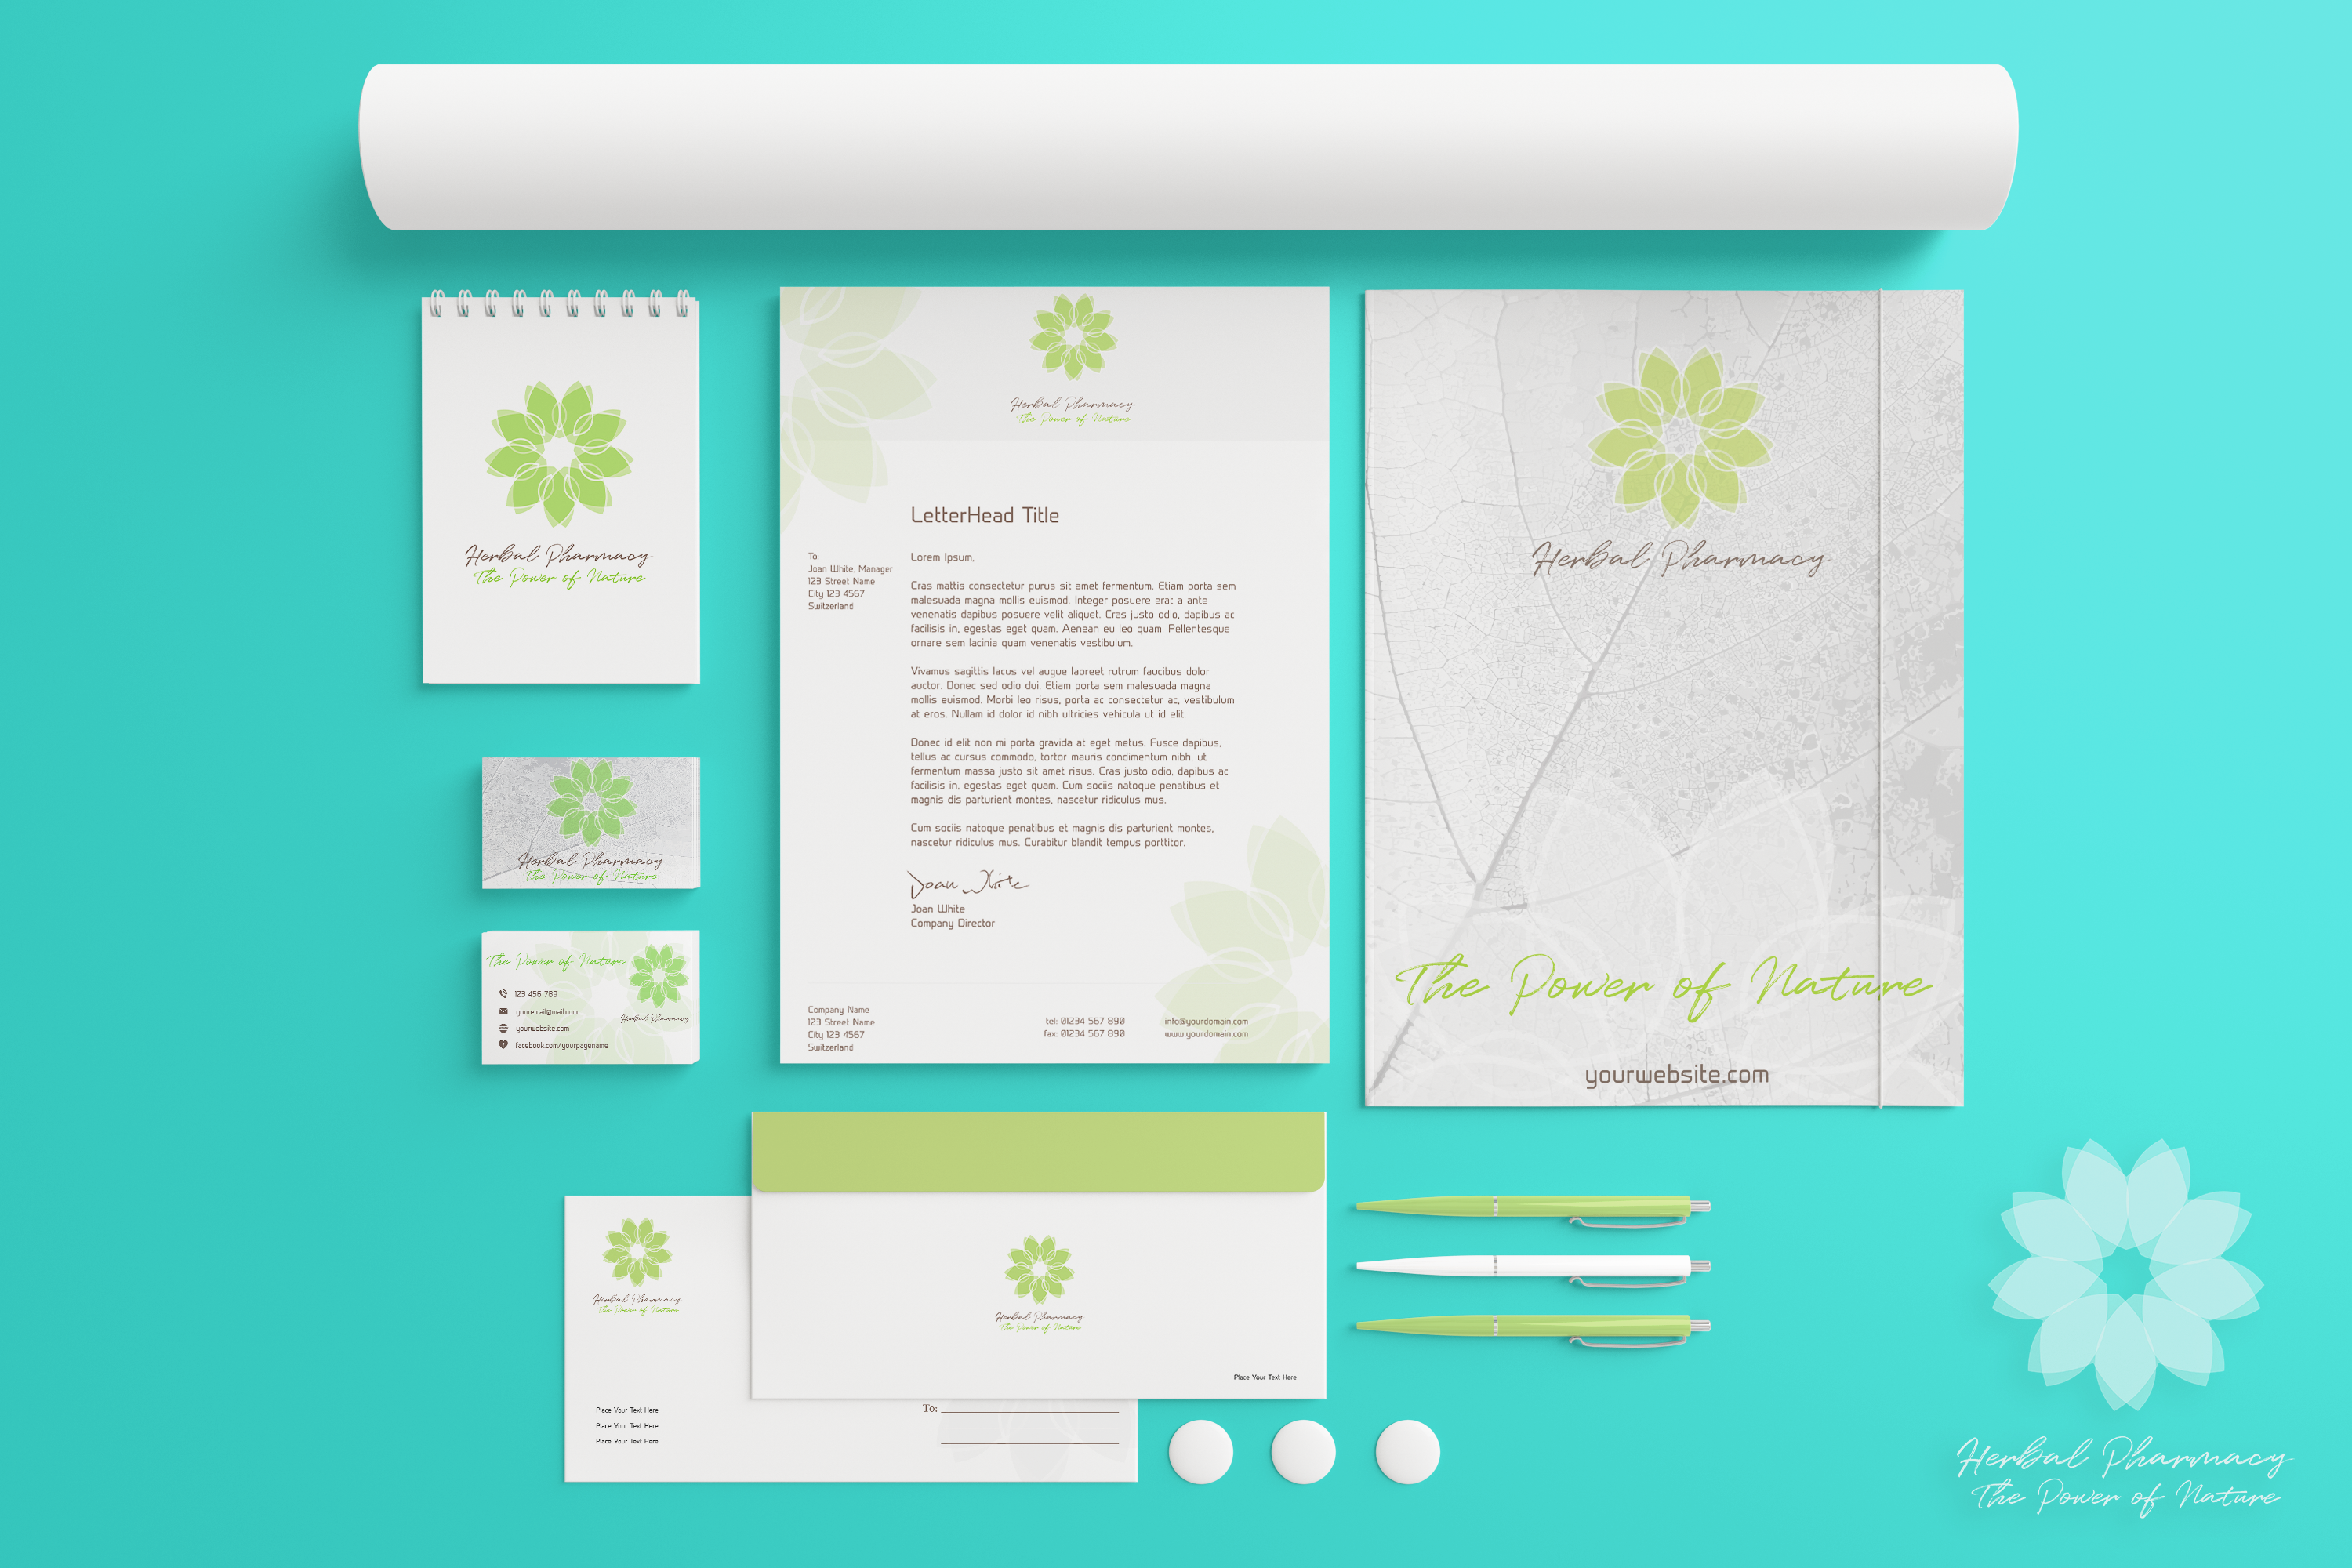 Herbal-Pharmacy-branding-package-marketing-elements---brand-identity-design-mockup1